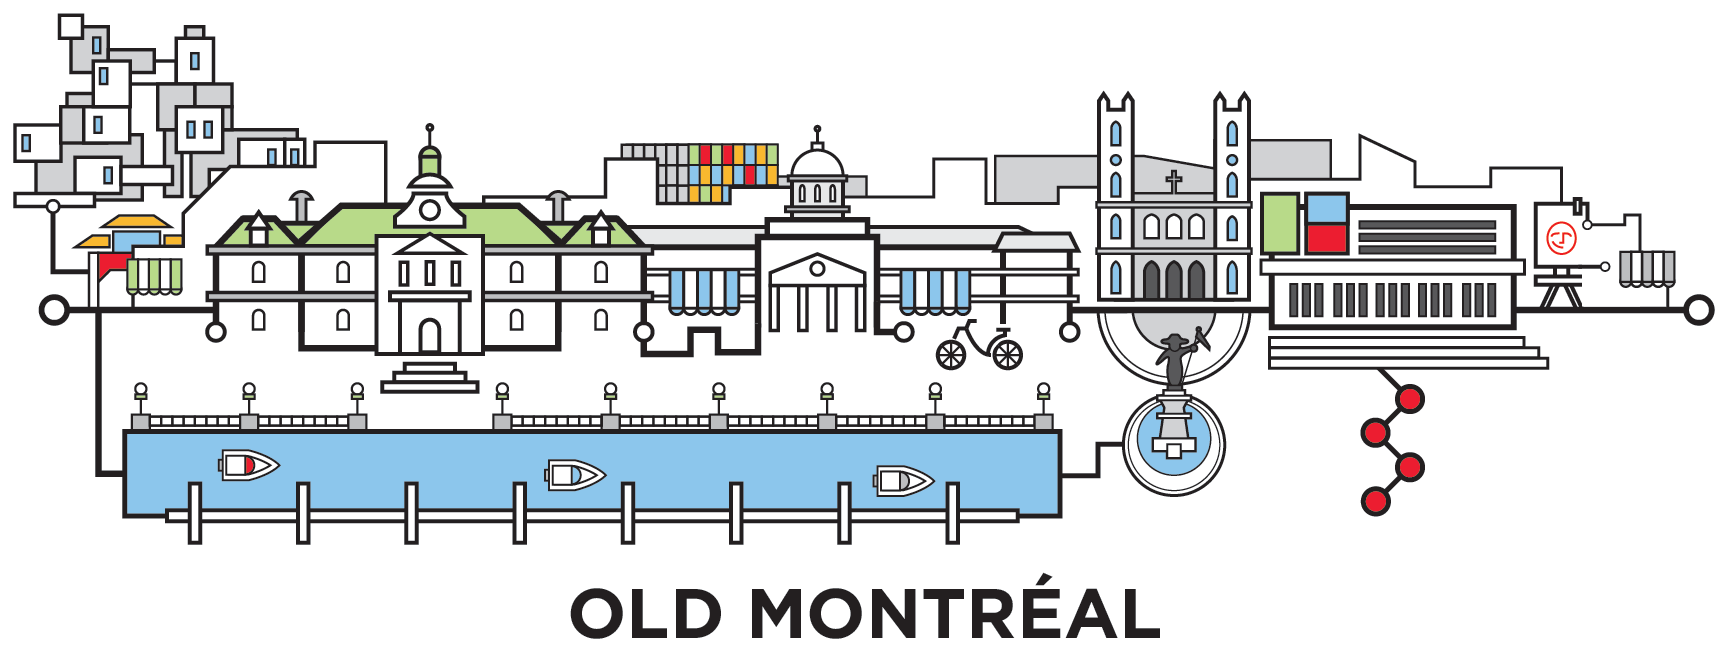 old-montreal-cityline-illustration-by-loogart